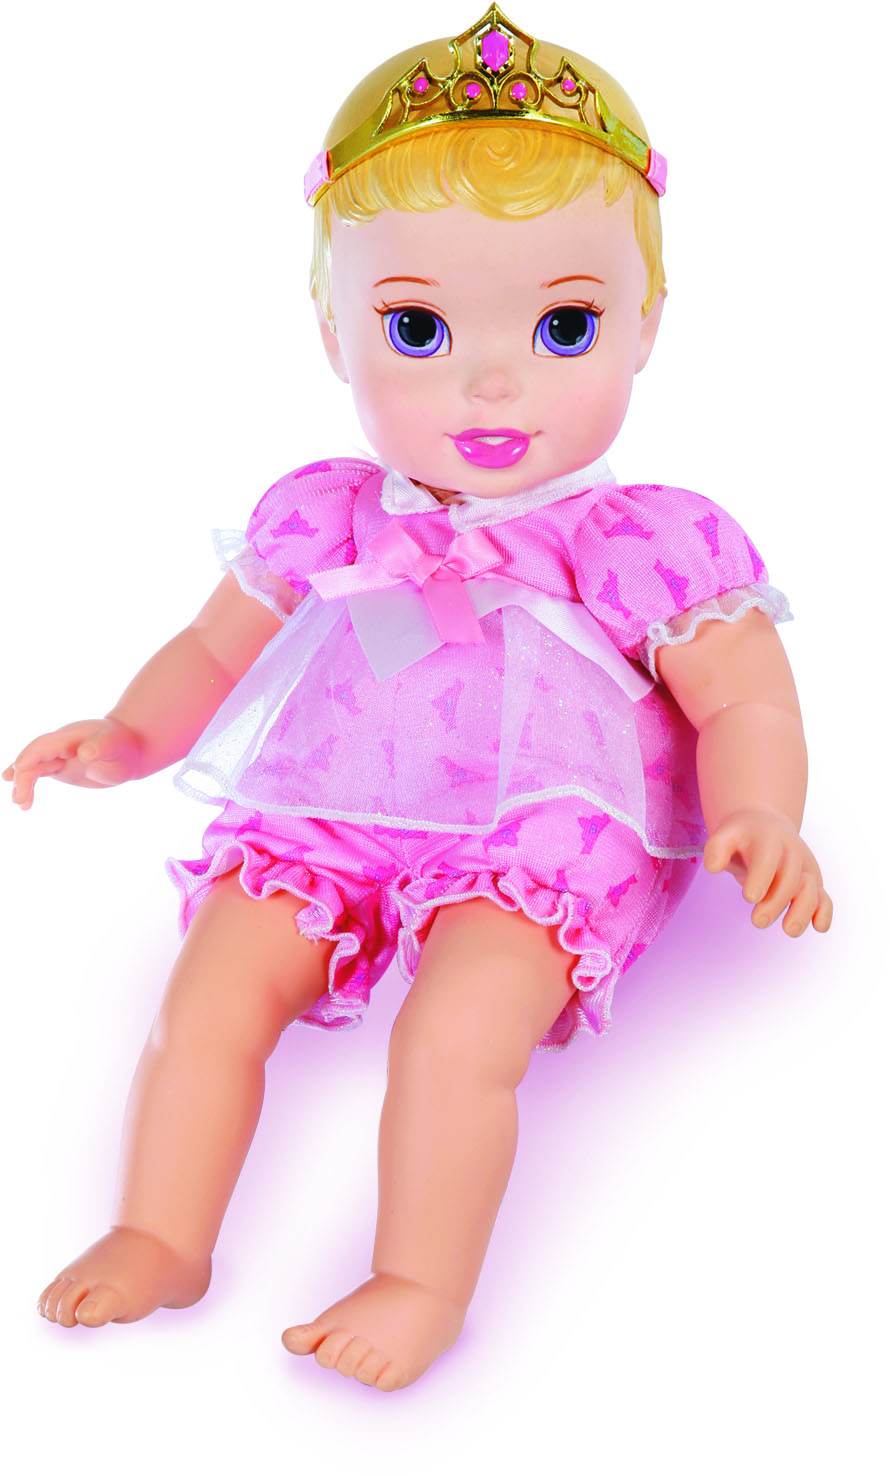 disney princess my first baby bath princess aurora doll from tollytots    doll giveaway  ends 12